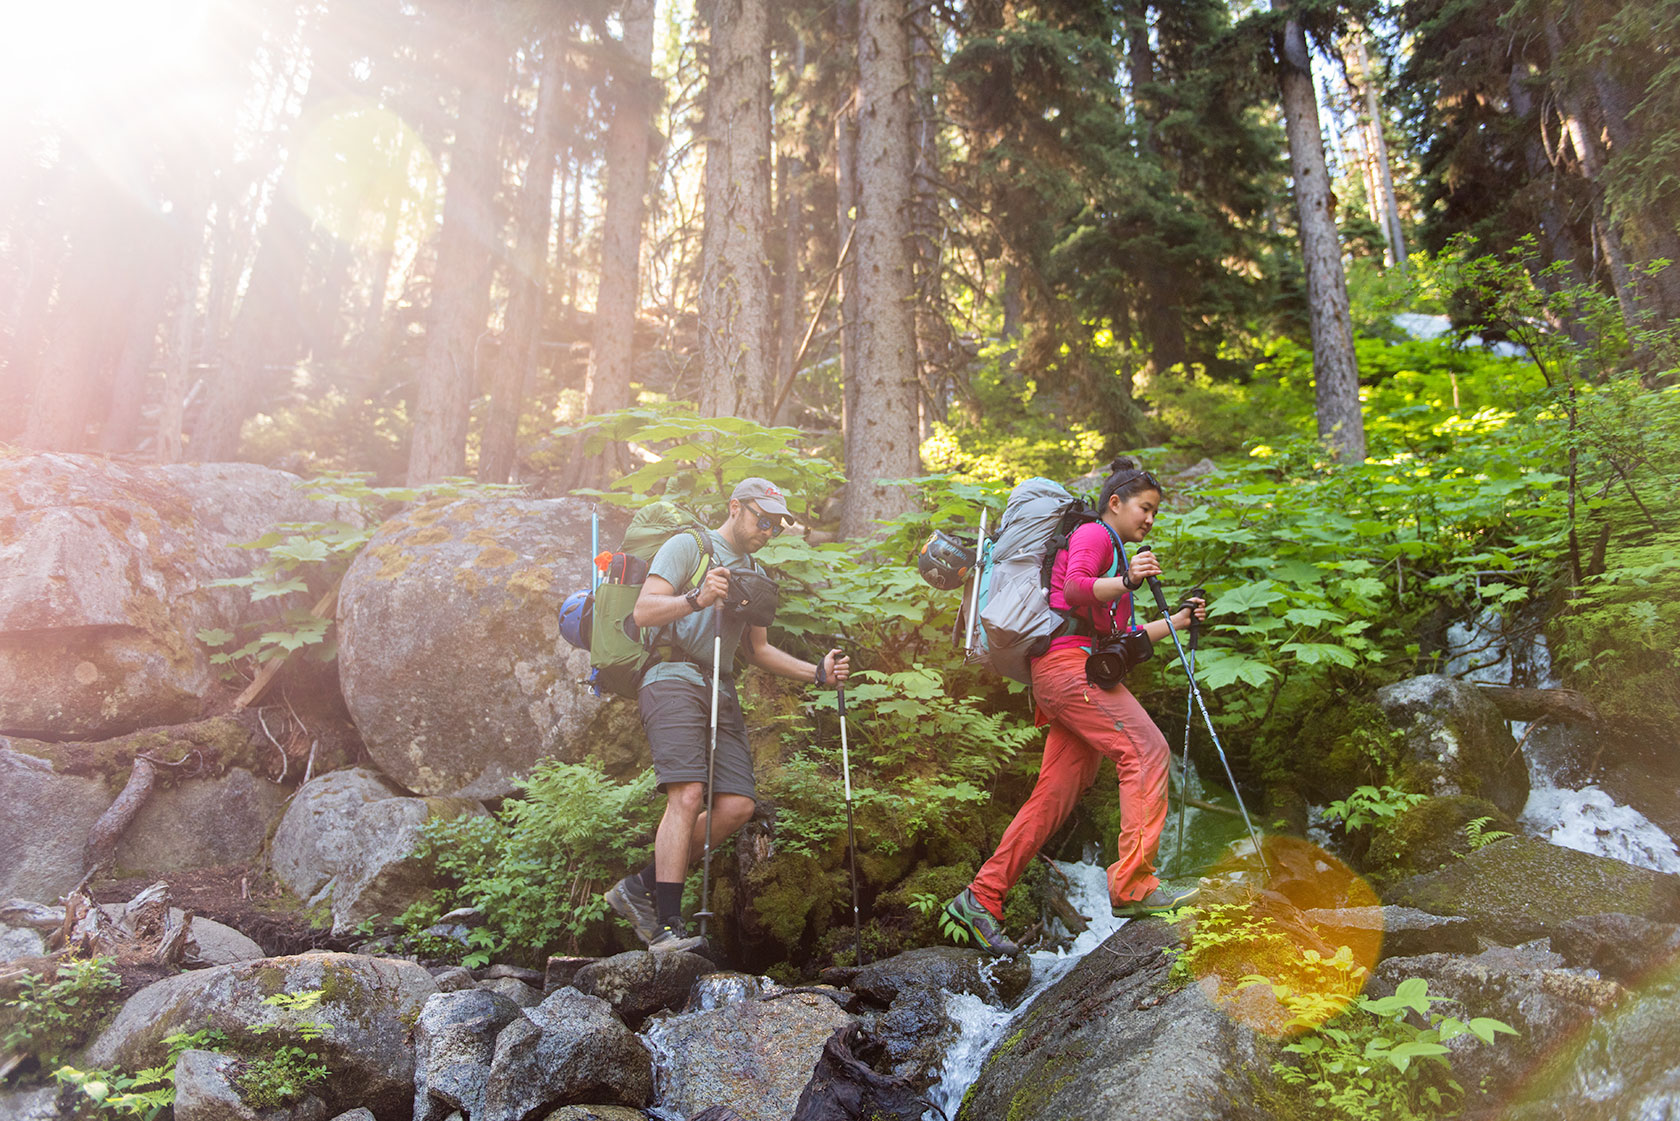 austin-trigg-osprey-hiking-backpacks-washington-lifestyle-adventure-outdoor-active-hike-camp-creek-crossing-forest-enchantments.jpg